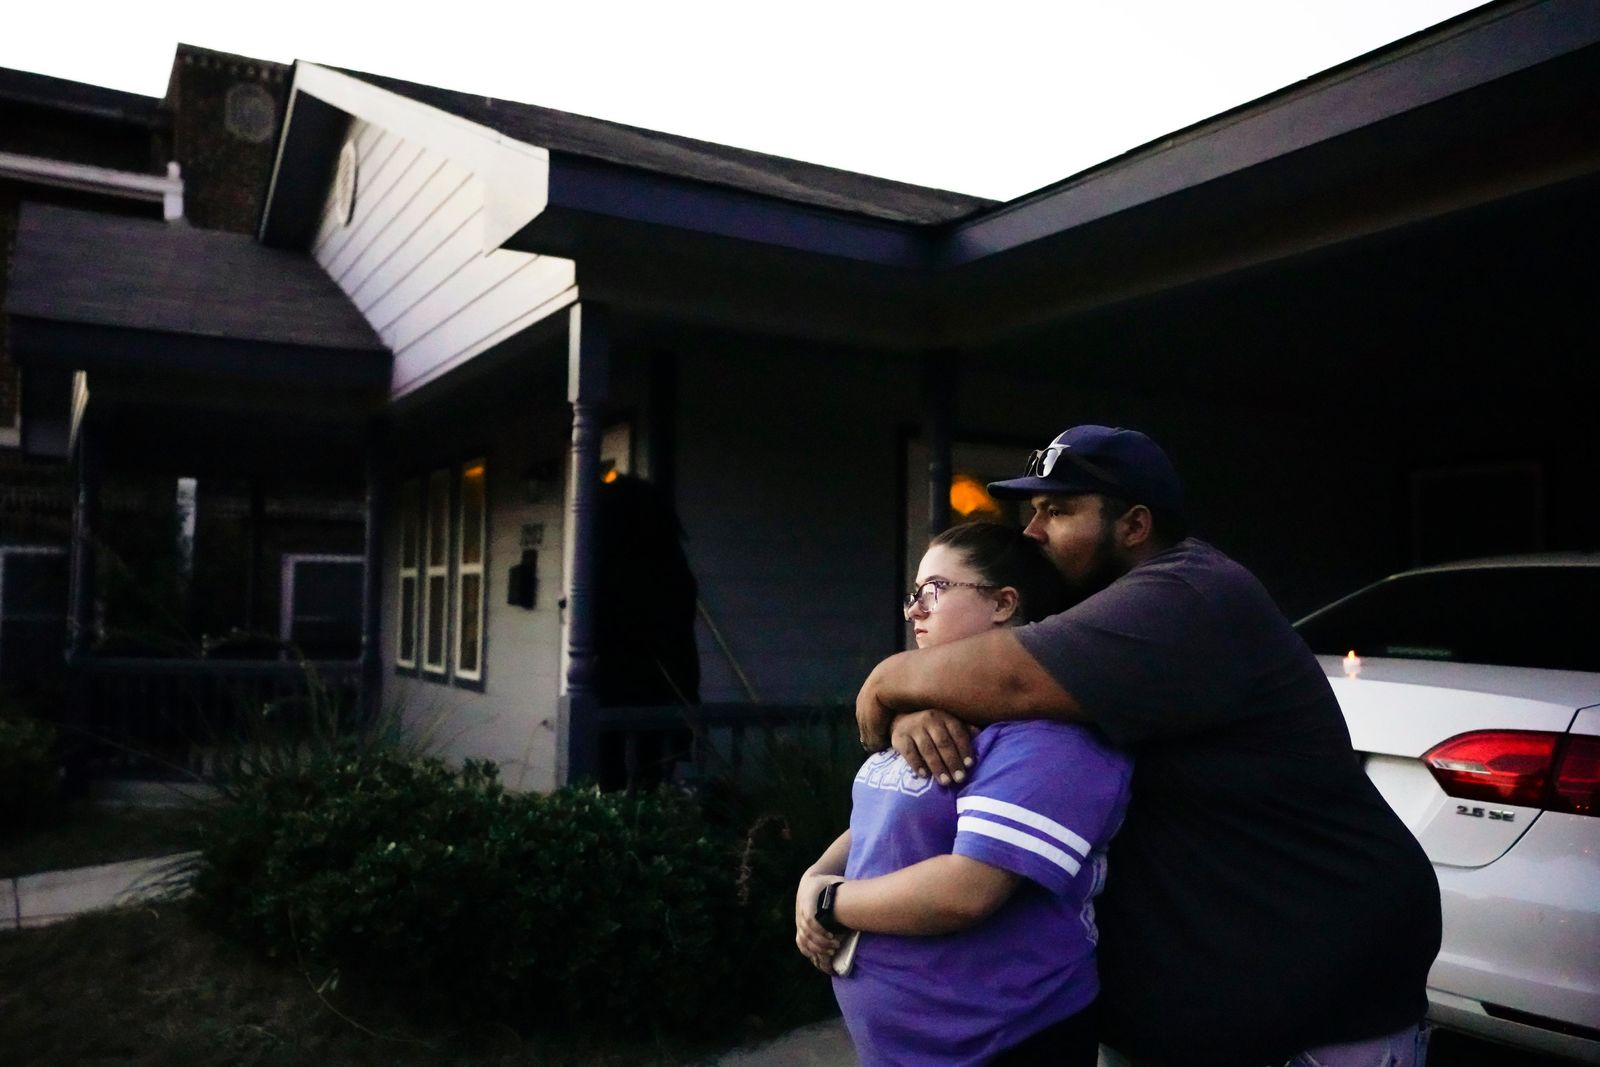 Destinie and Floriberto Bartolo mourn for their friend Atatiana Jefferson, who they say they have known since high school, outside the house where Jefferson was shot and killed by a police officer, during a community vigil for Jefferson on Sunday, Oct. 13, 2019, in Fort Worth, Texas. (Smiley N. Pool/The Dallas Morning News via AP)